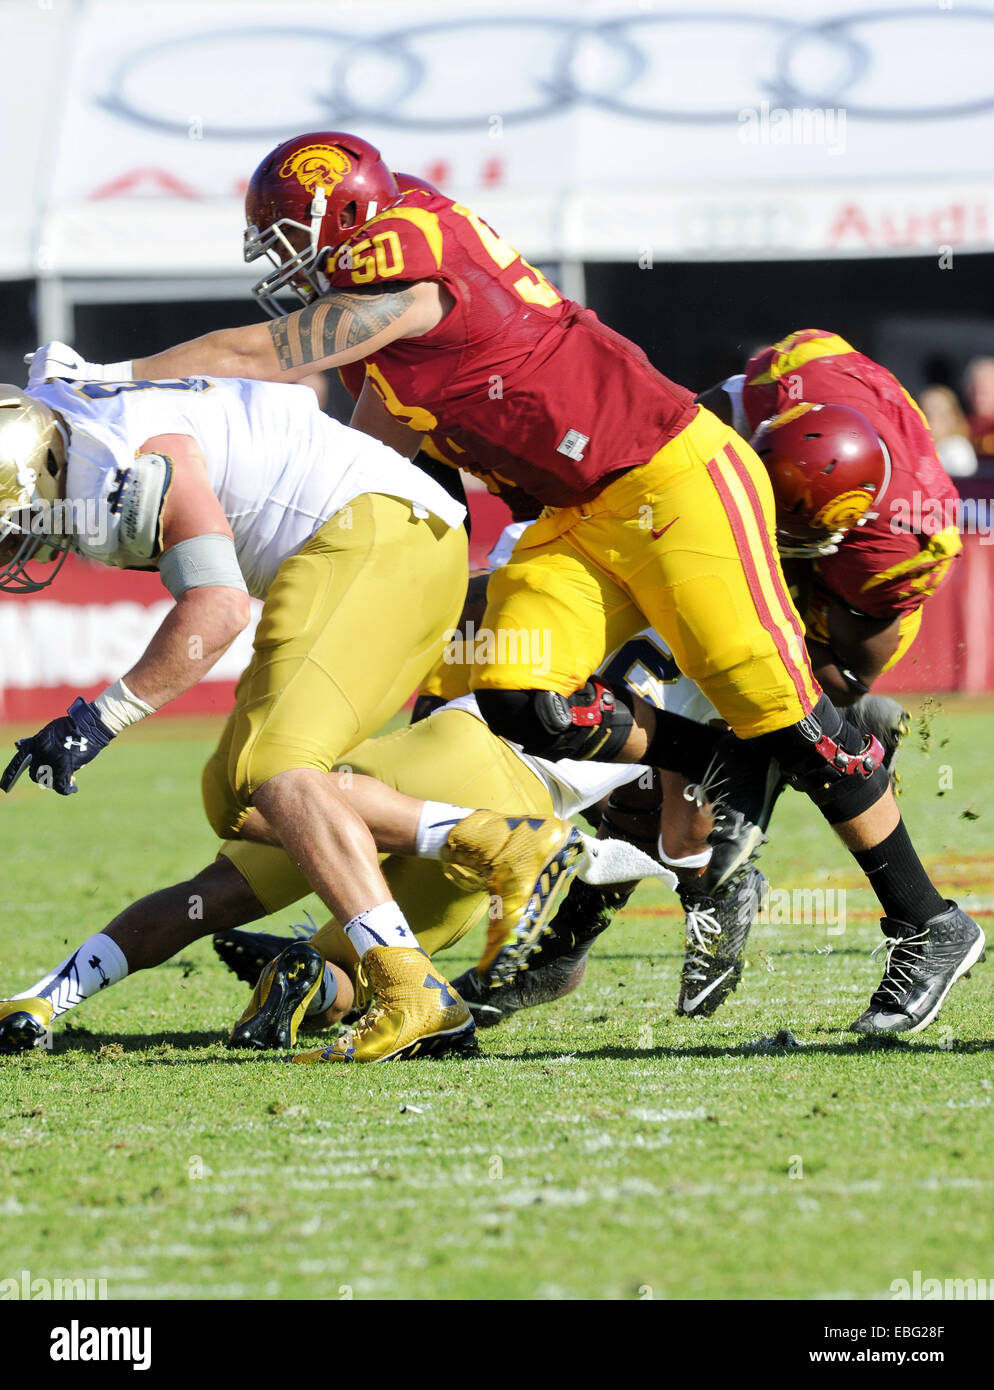 November 29 2014. Toa Lobendahn of the USC Trojans in action during a 49-14 victory over the Notre Dame Fighting - Stock Image